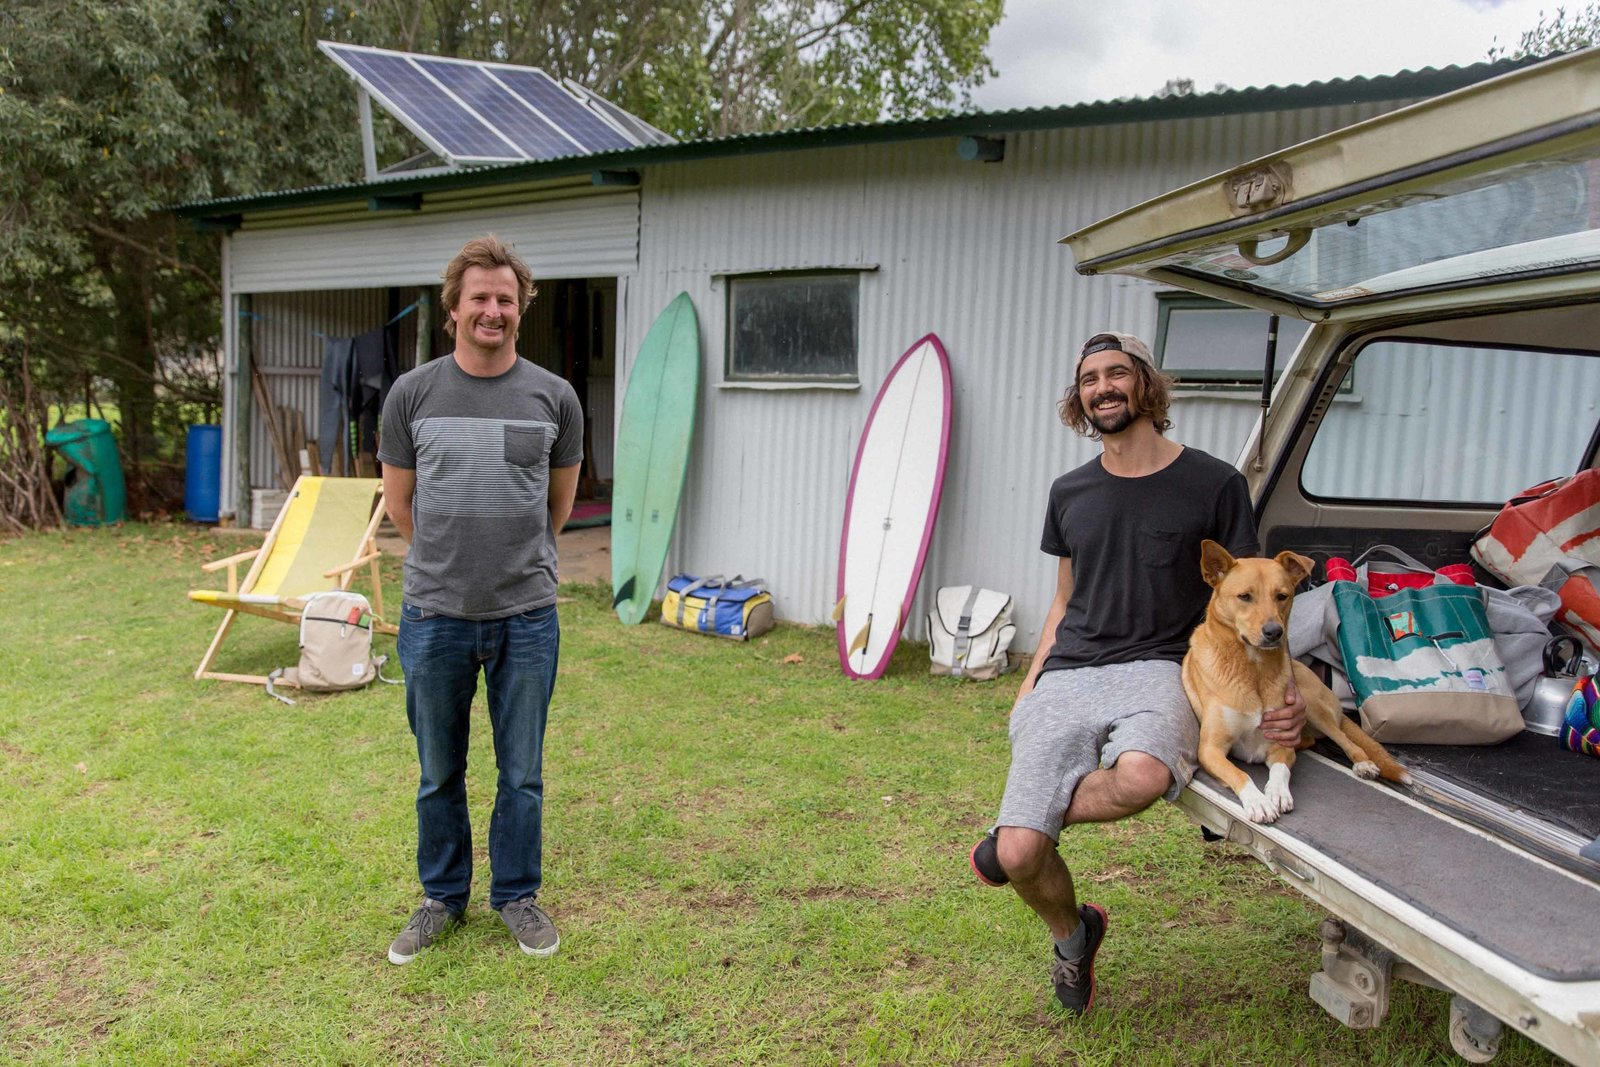 Photo 3 of 9 in Salvaged Outdoor Gear Gets New Life, Thanks to a Surfer-Designer Duo